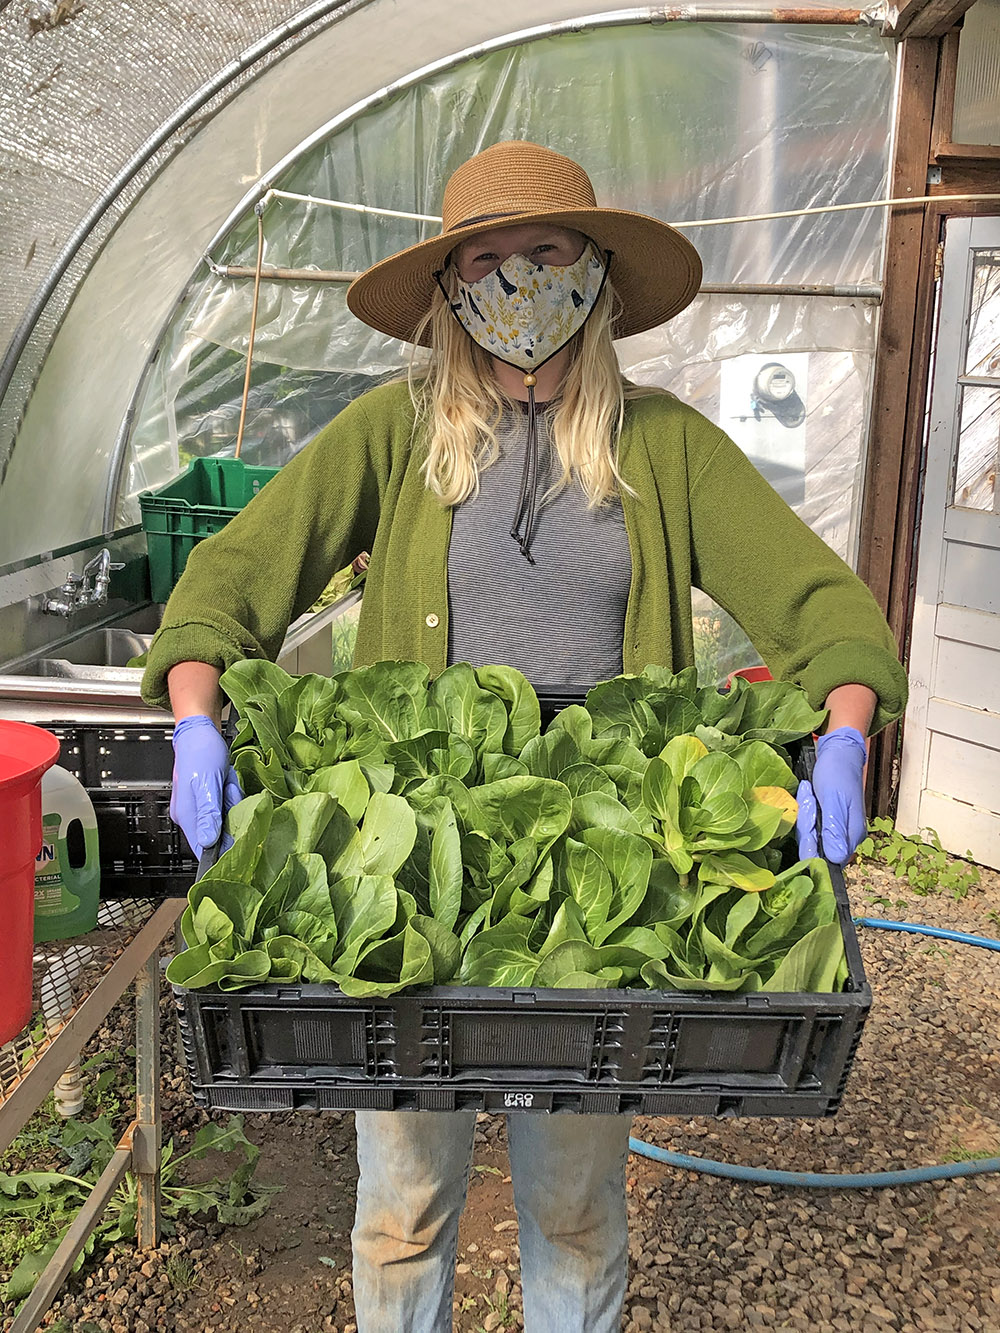 UGArden Farm Manager JoHannah Biang practices safety guidelines imposed due to the COVID-19 crisis while harvesting greens for distribution to food insecure families in the Athens, Georgia, area.